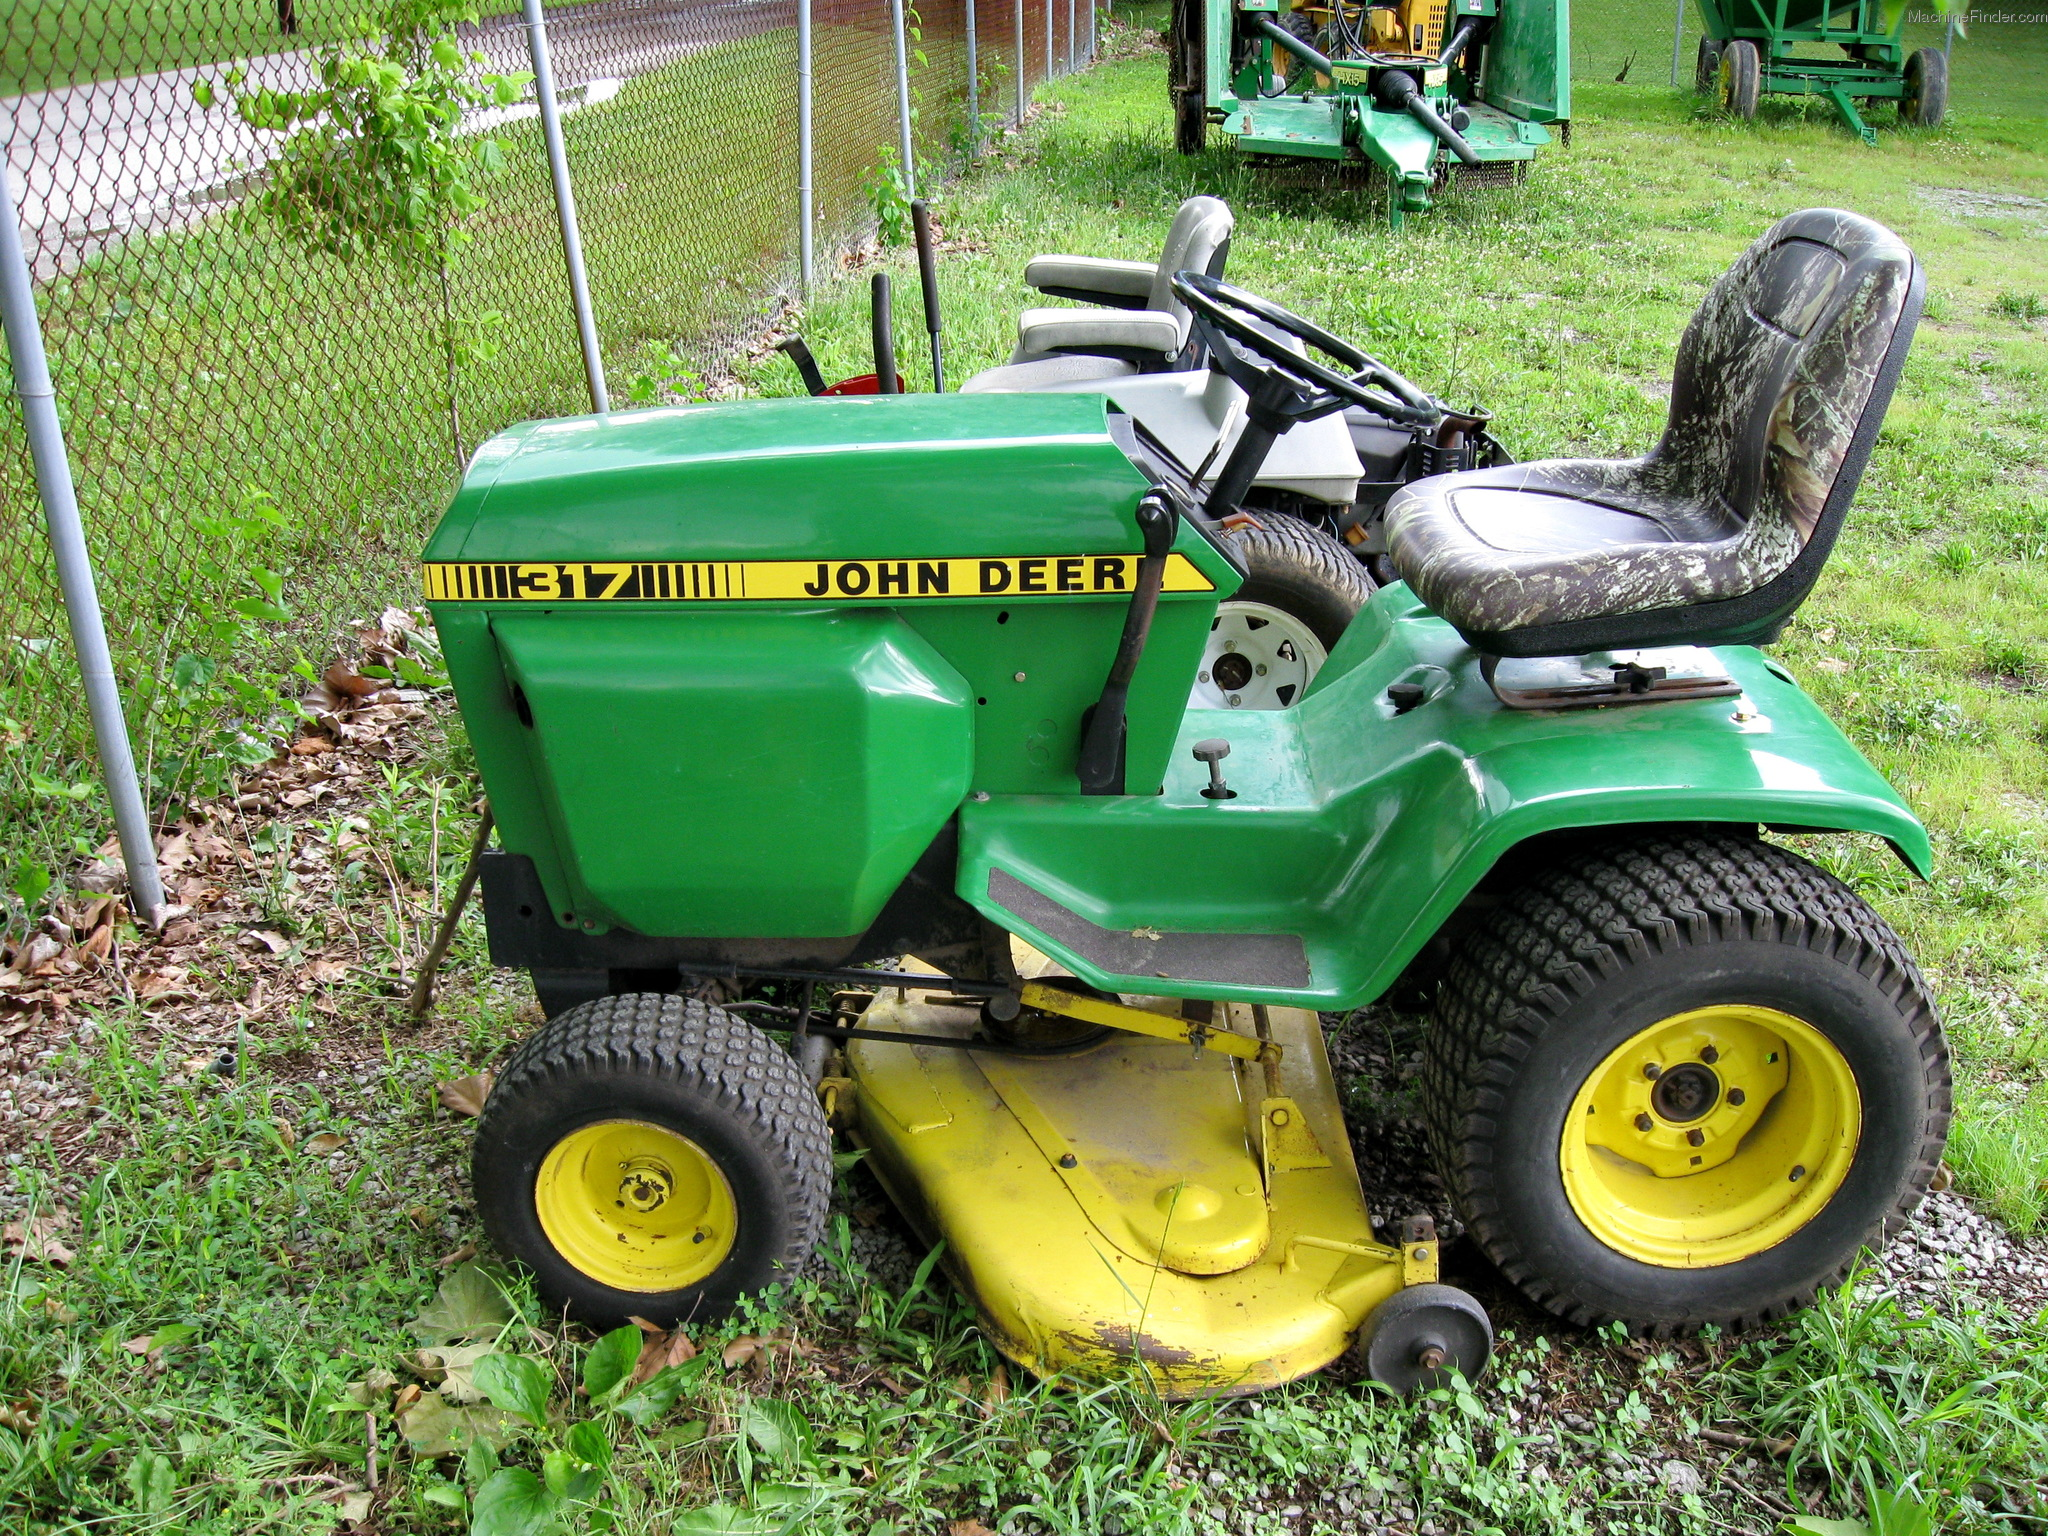 John Deere 317 Lawn Tractor Tractors These Are The Next Stepshoped This Helpedpositive Feedback And Garden Commercial Mowing